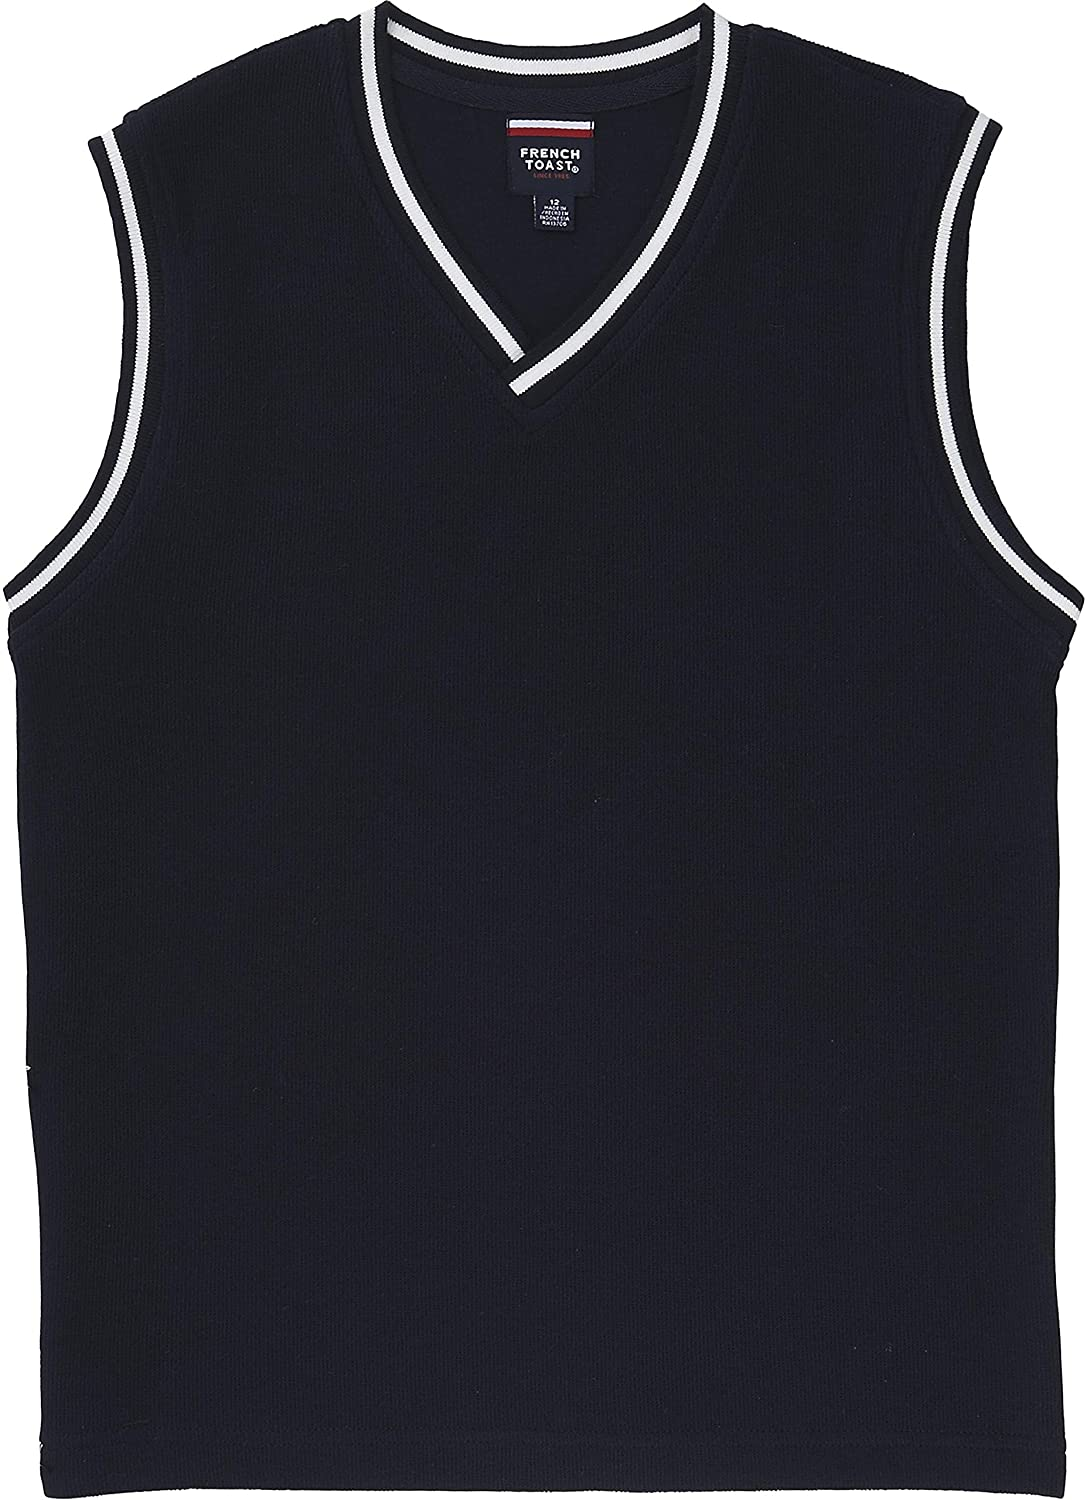 Boy's Sweater Vests | Amazon.com